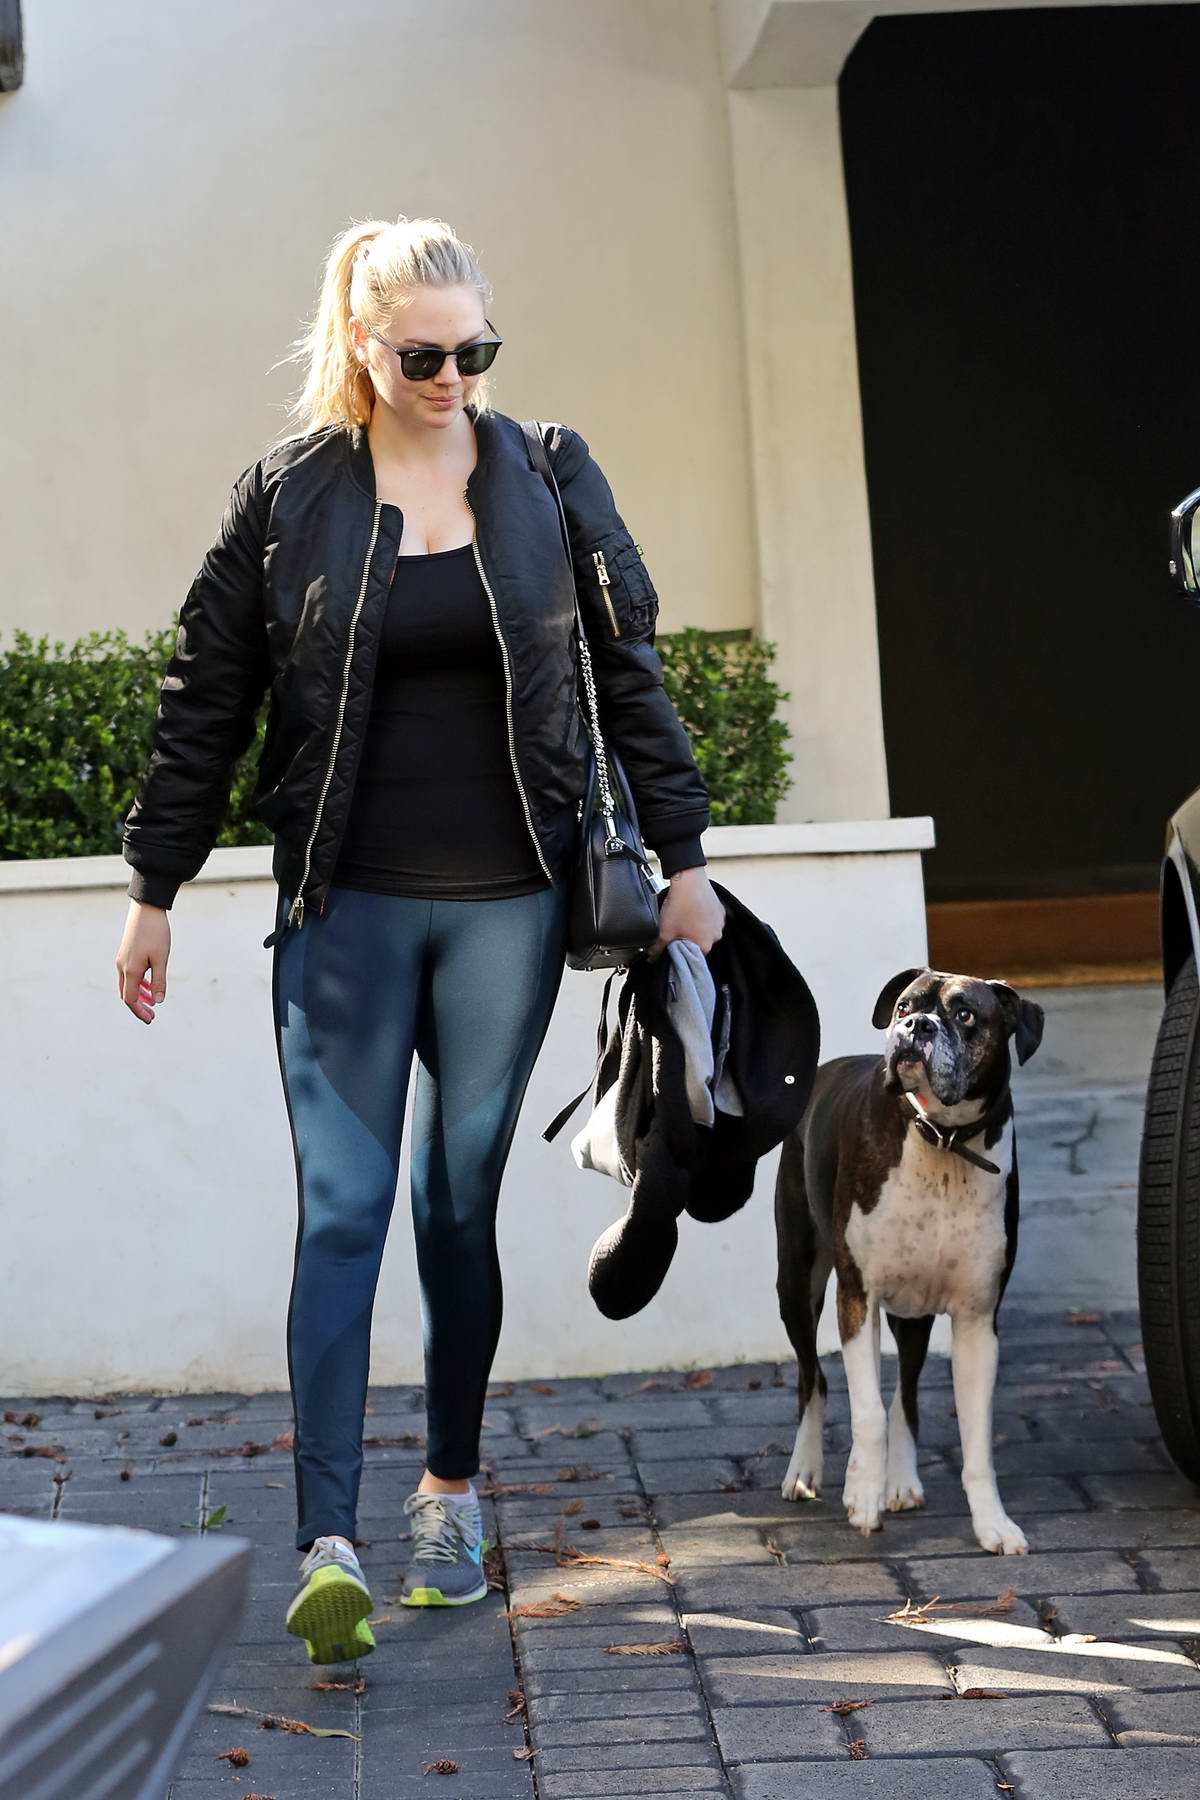 Kate Upton rocks a black jacket with a black top, blue leggings and Nike trainers as she leaves after her workout session in Los Angeles